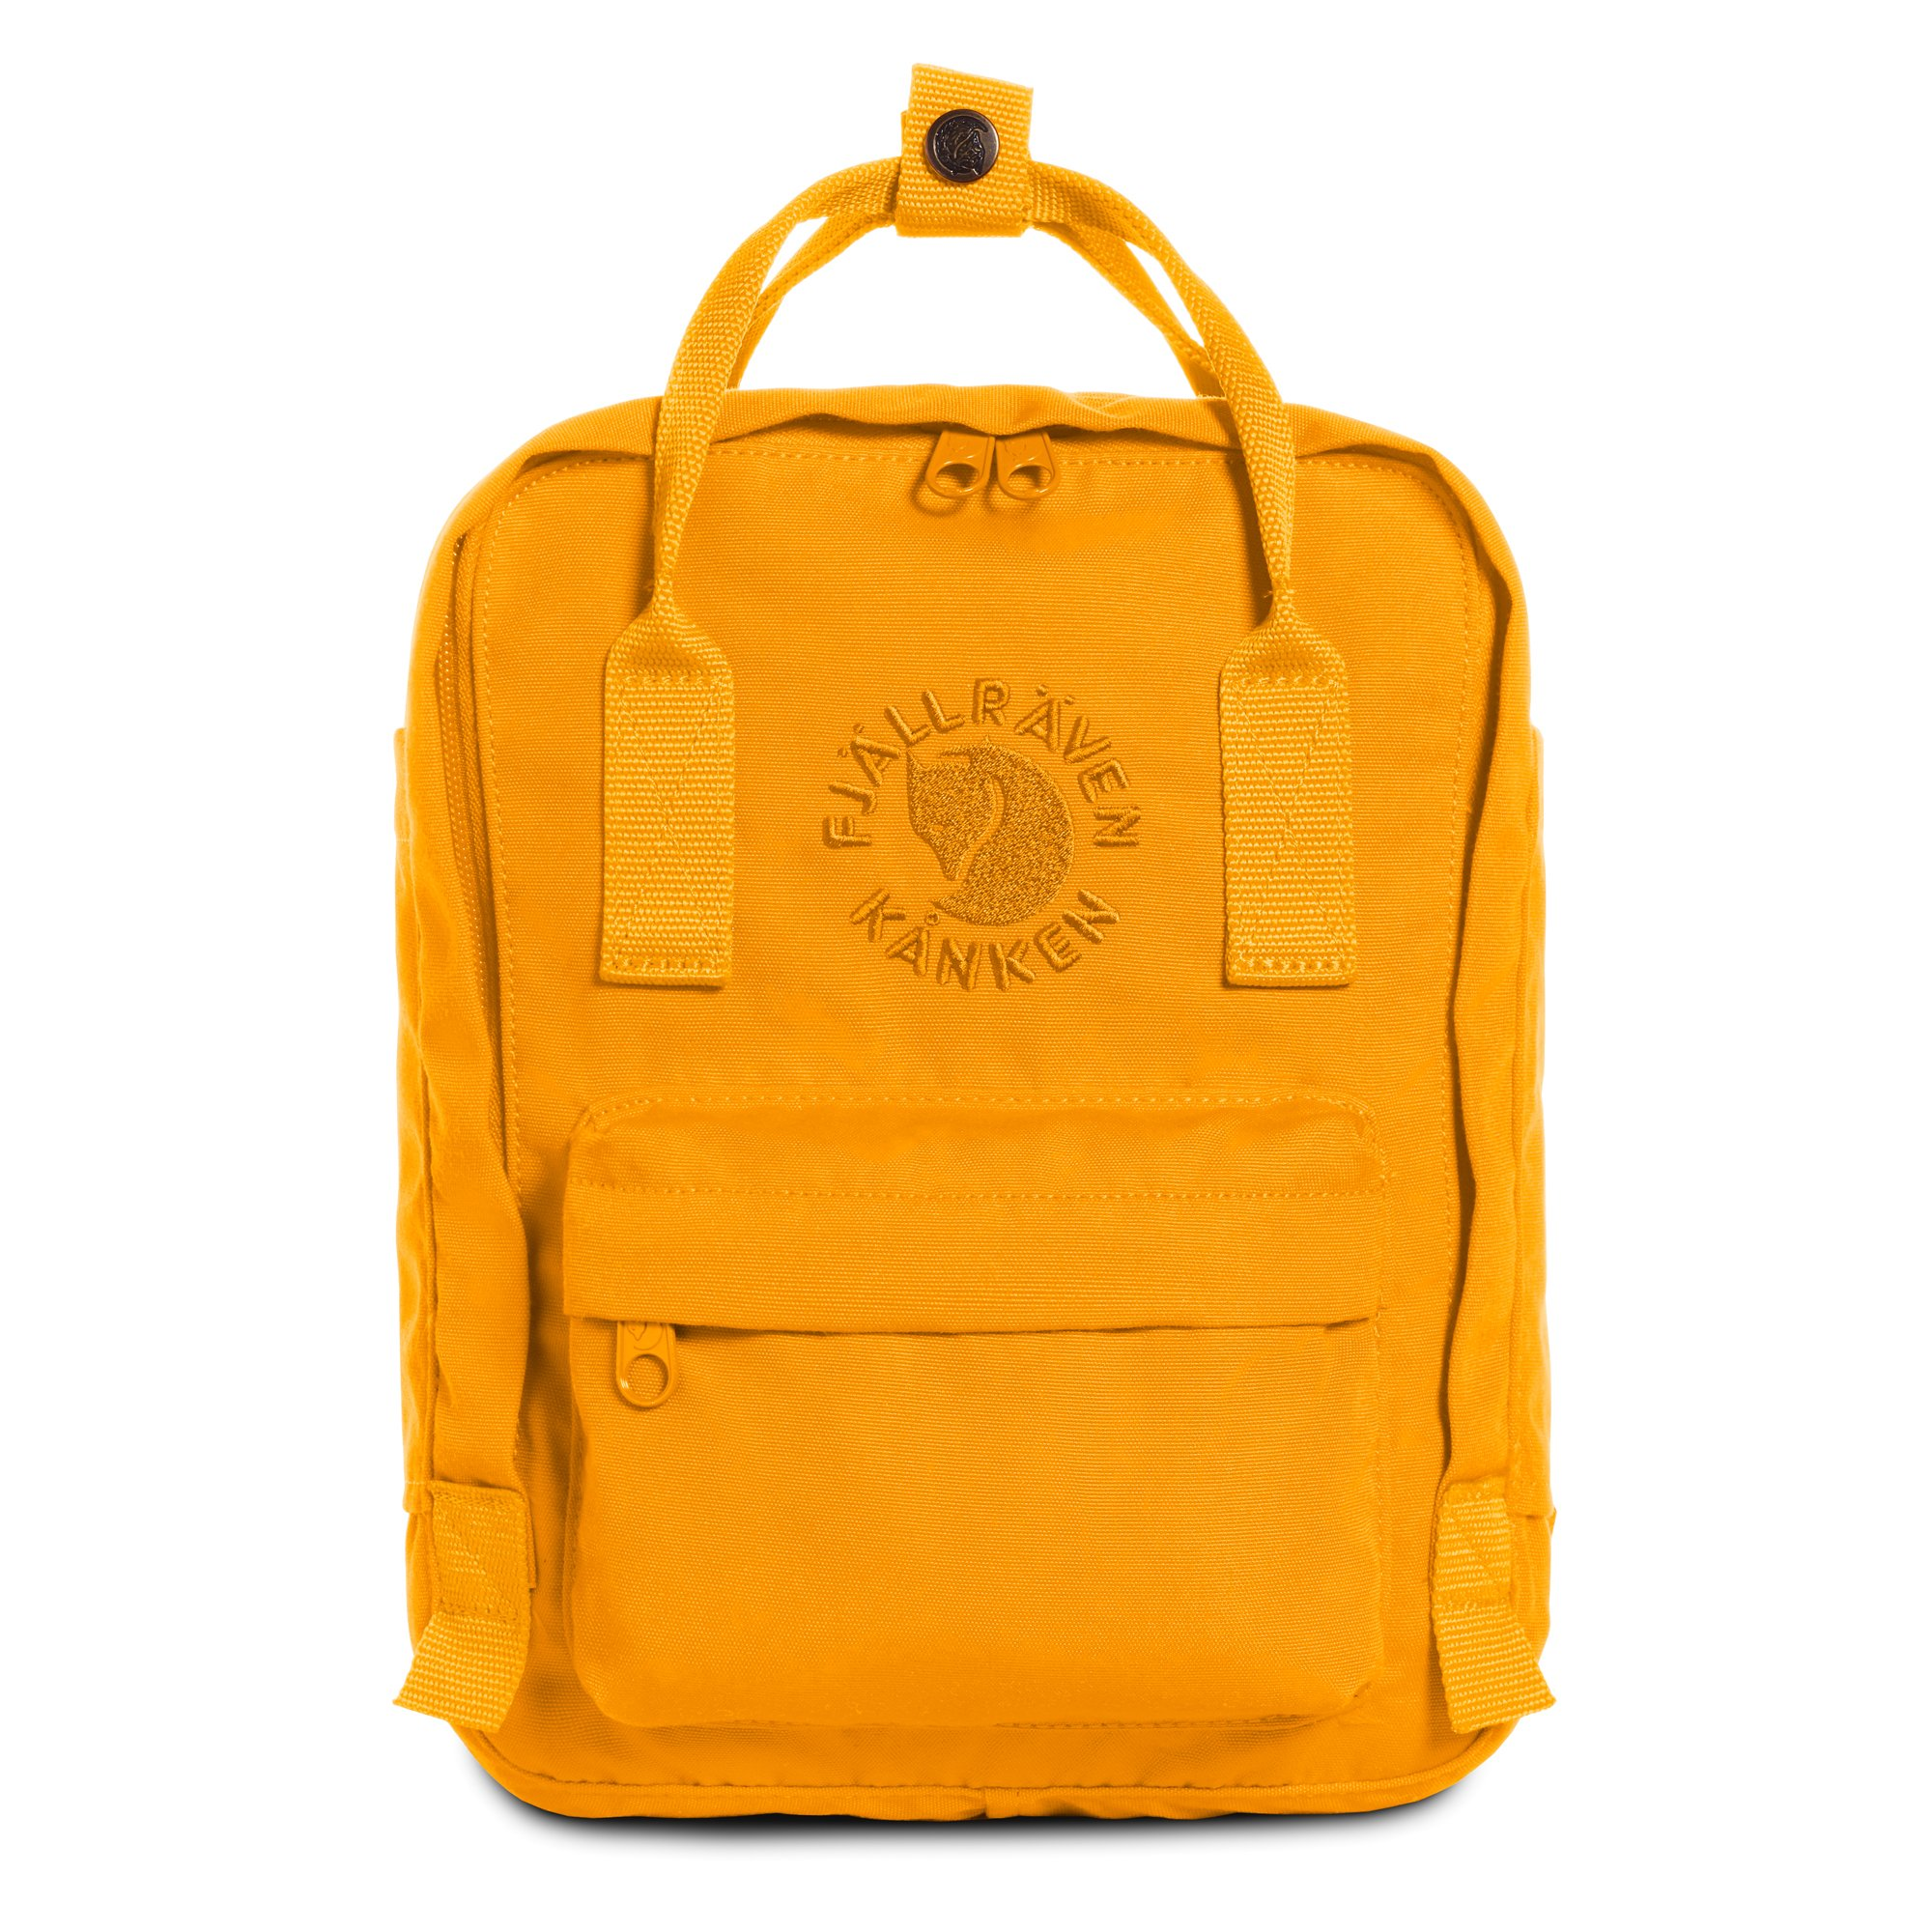 Fjallraven - Kanken, Re-Kanken Mini Recycled Backpack for Everyday Use, Heritage and Responsibility Since 1960, Sunflower Yellow by Fjallraven